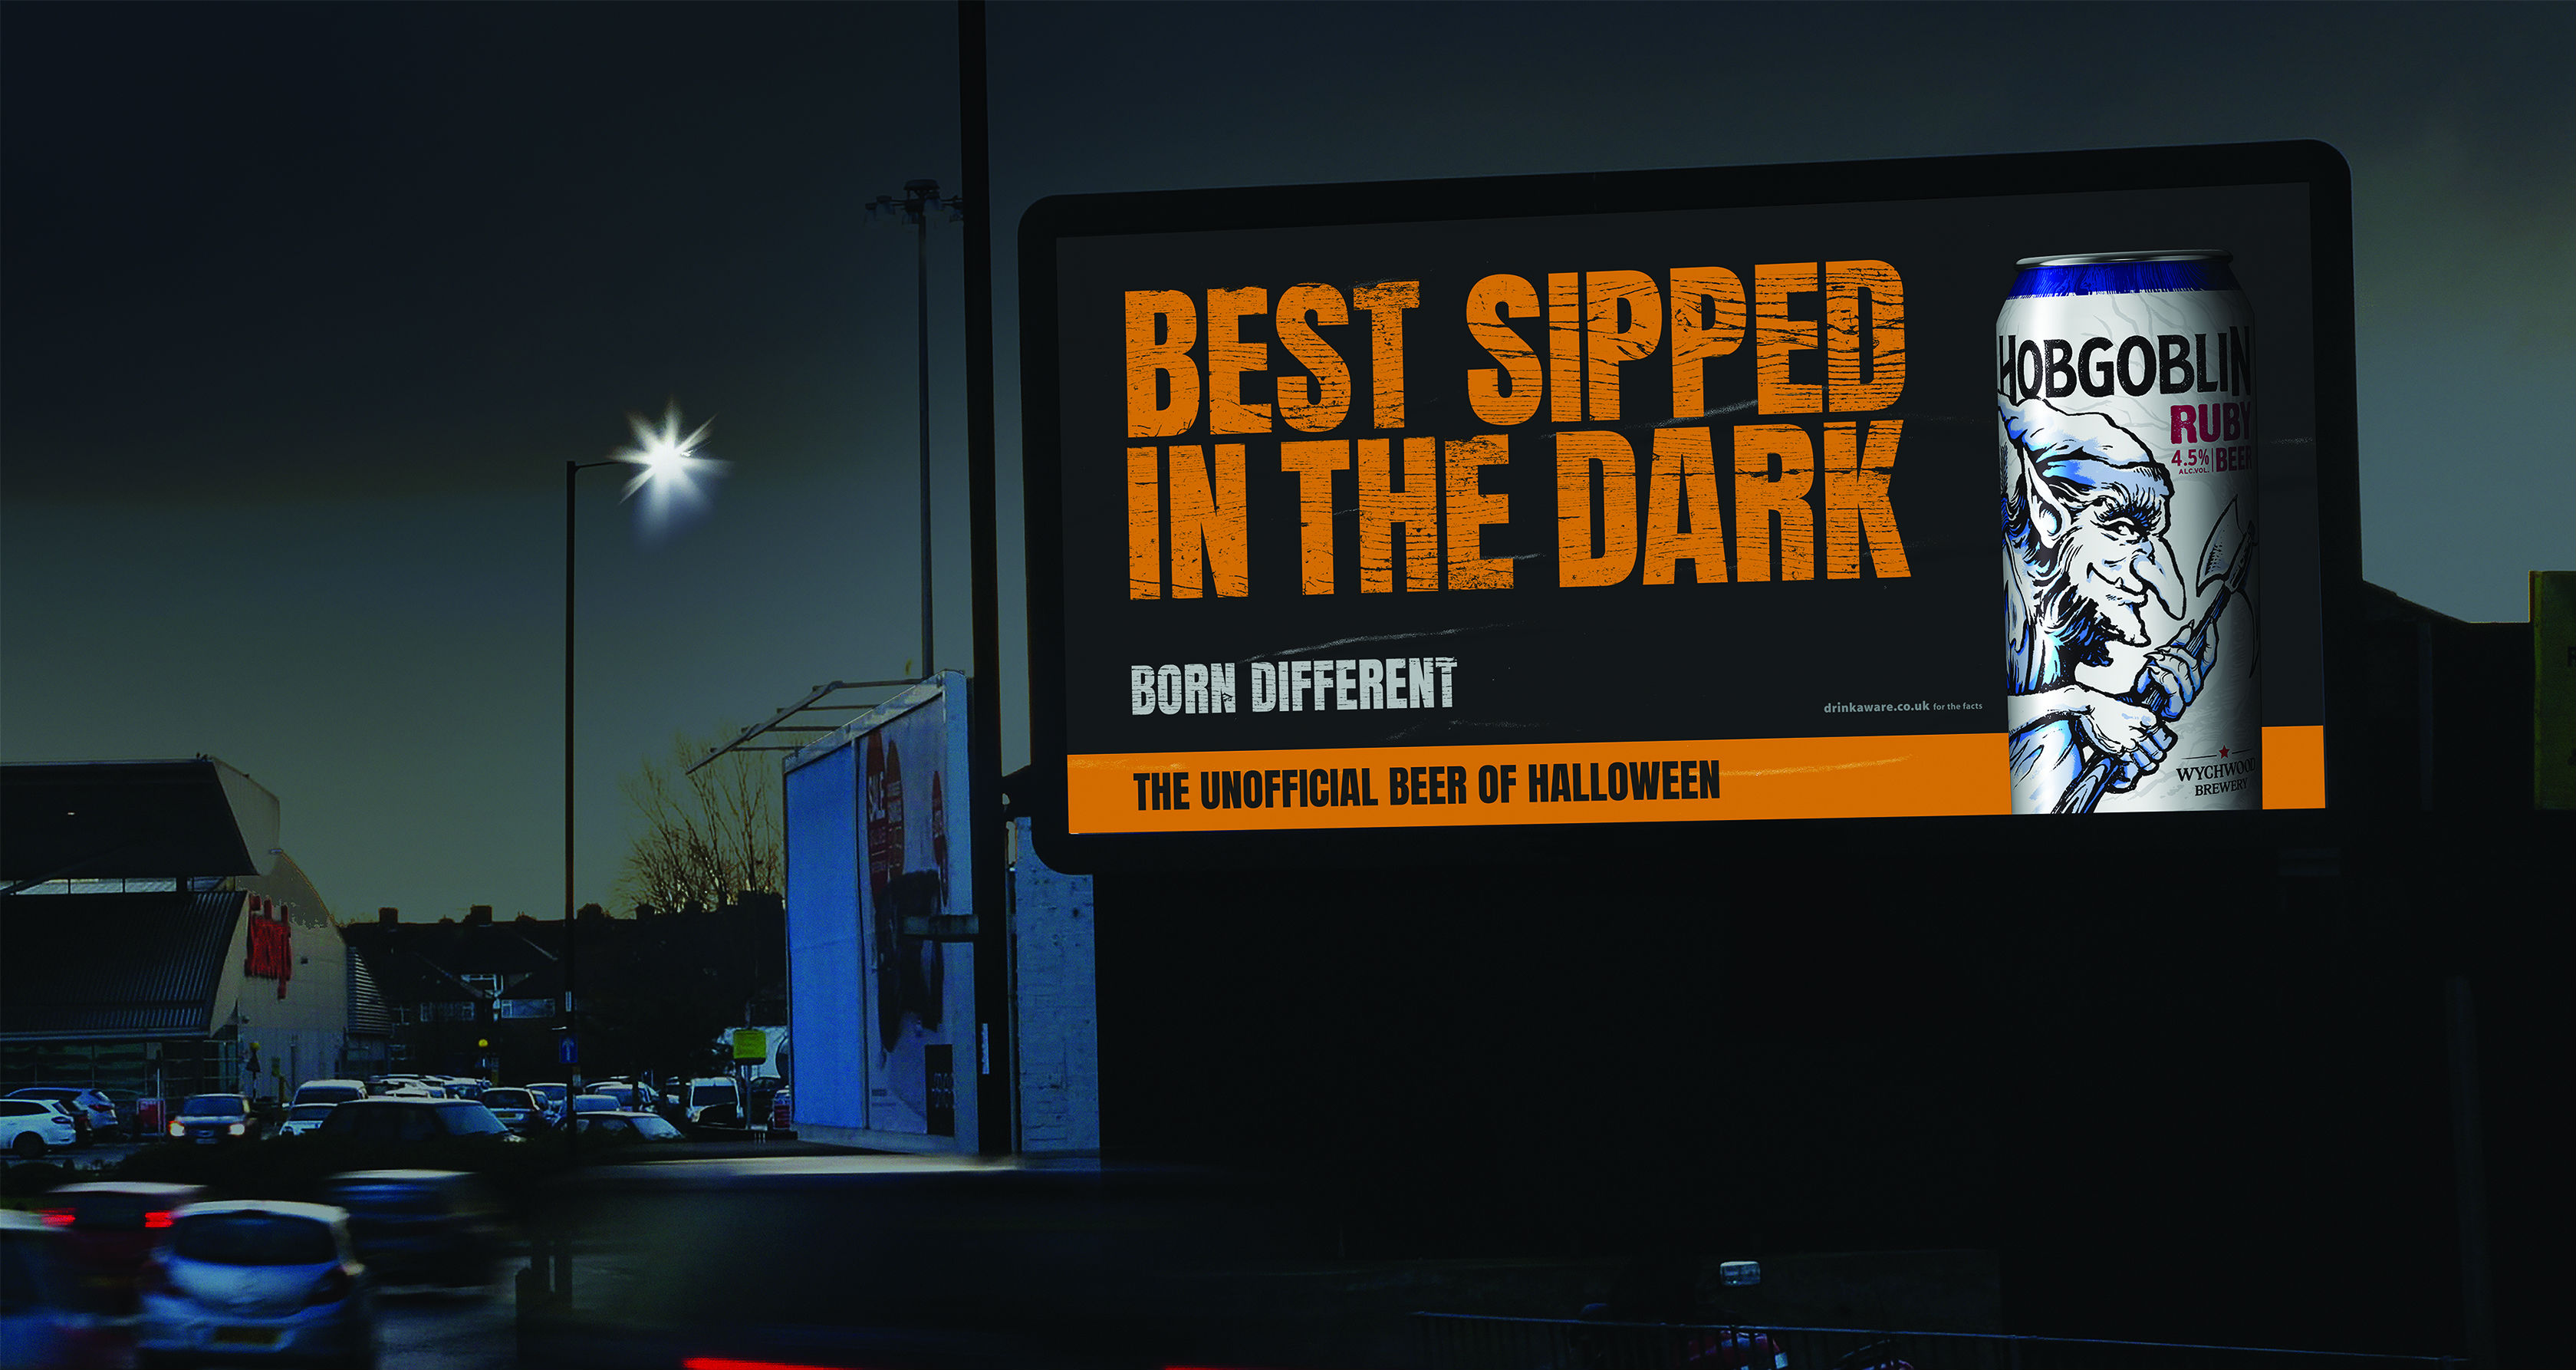 Best Branded Campaigns Of Halloween 2020 Hobgoblin unveils Halloween campaign   Talking Retail